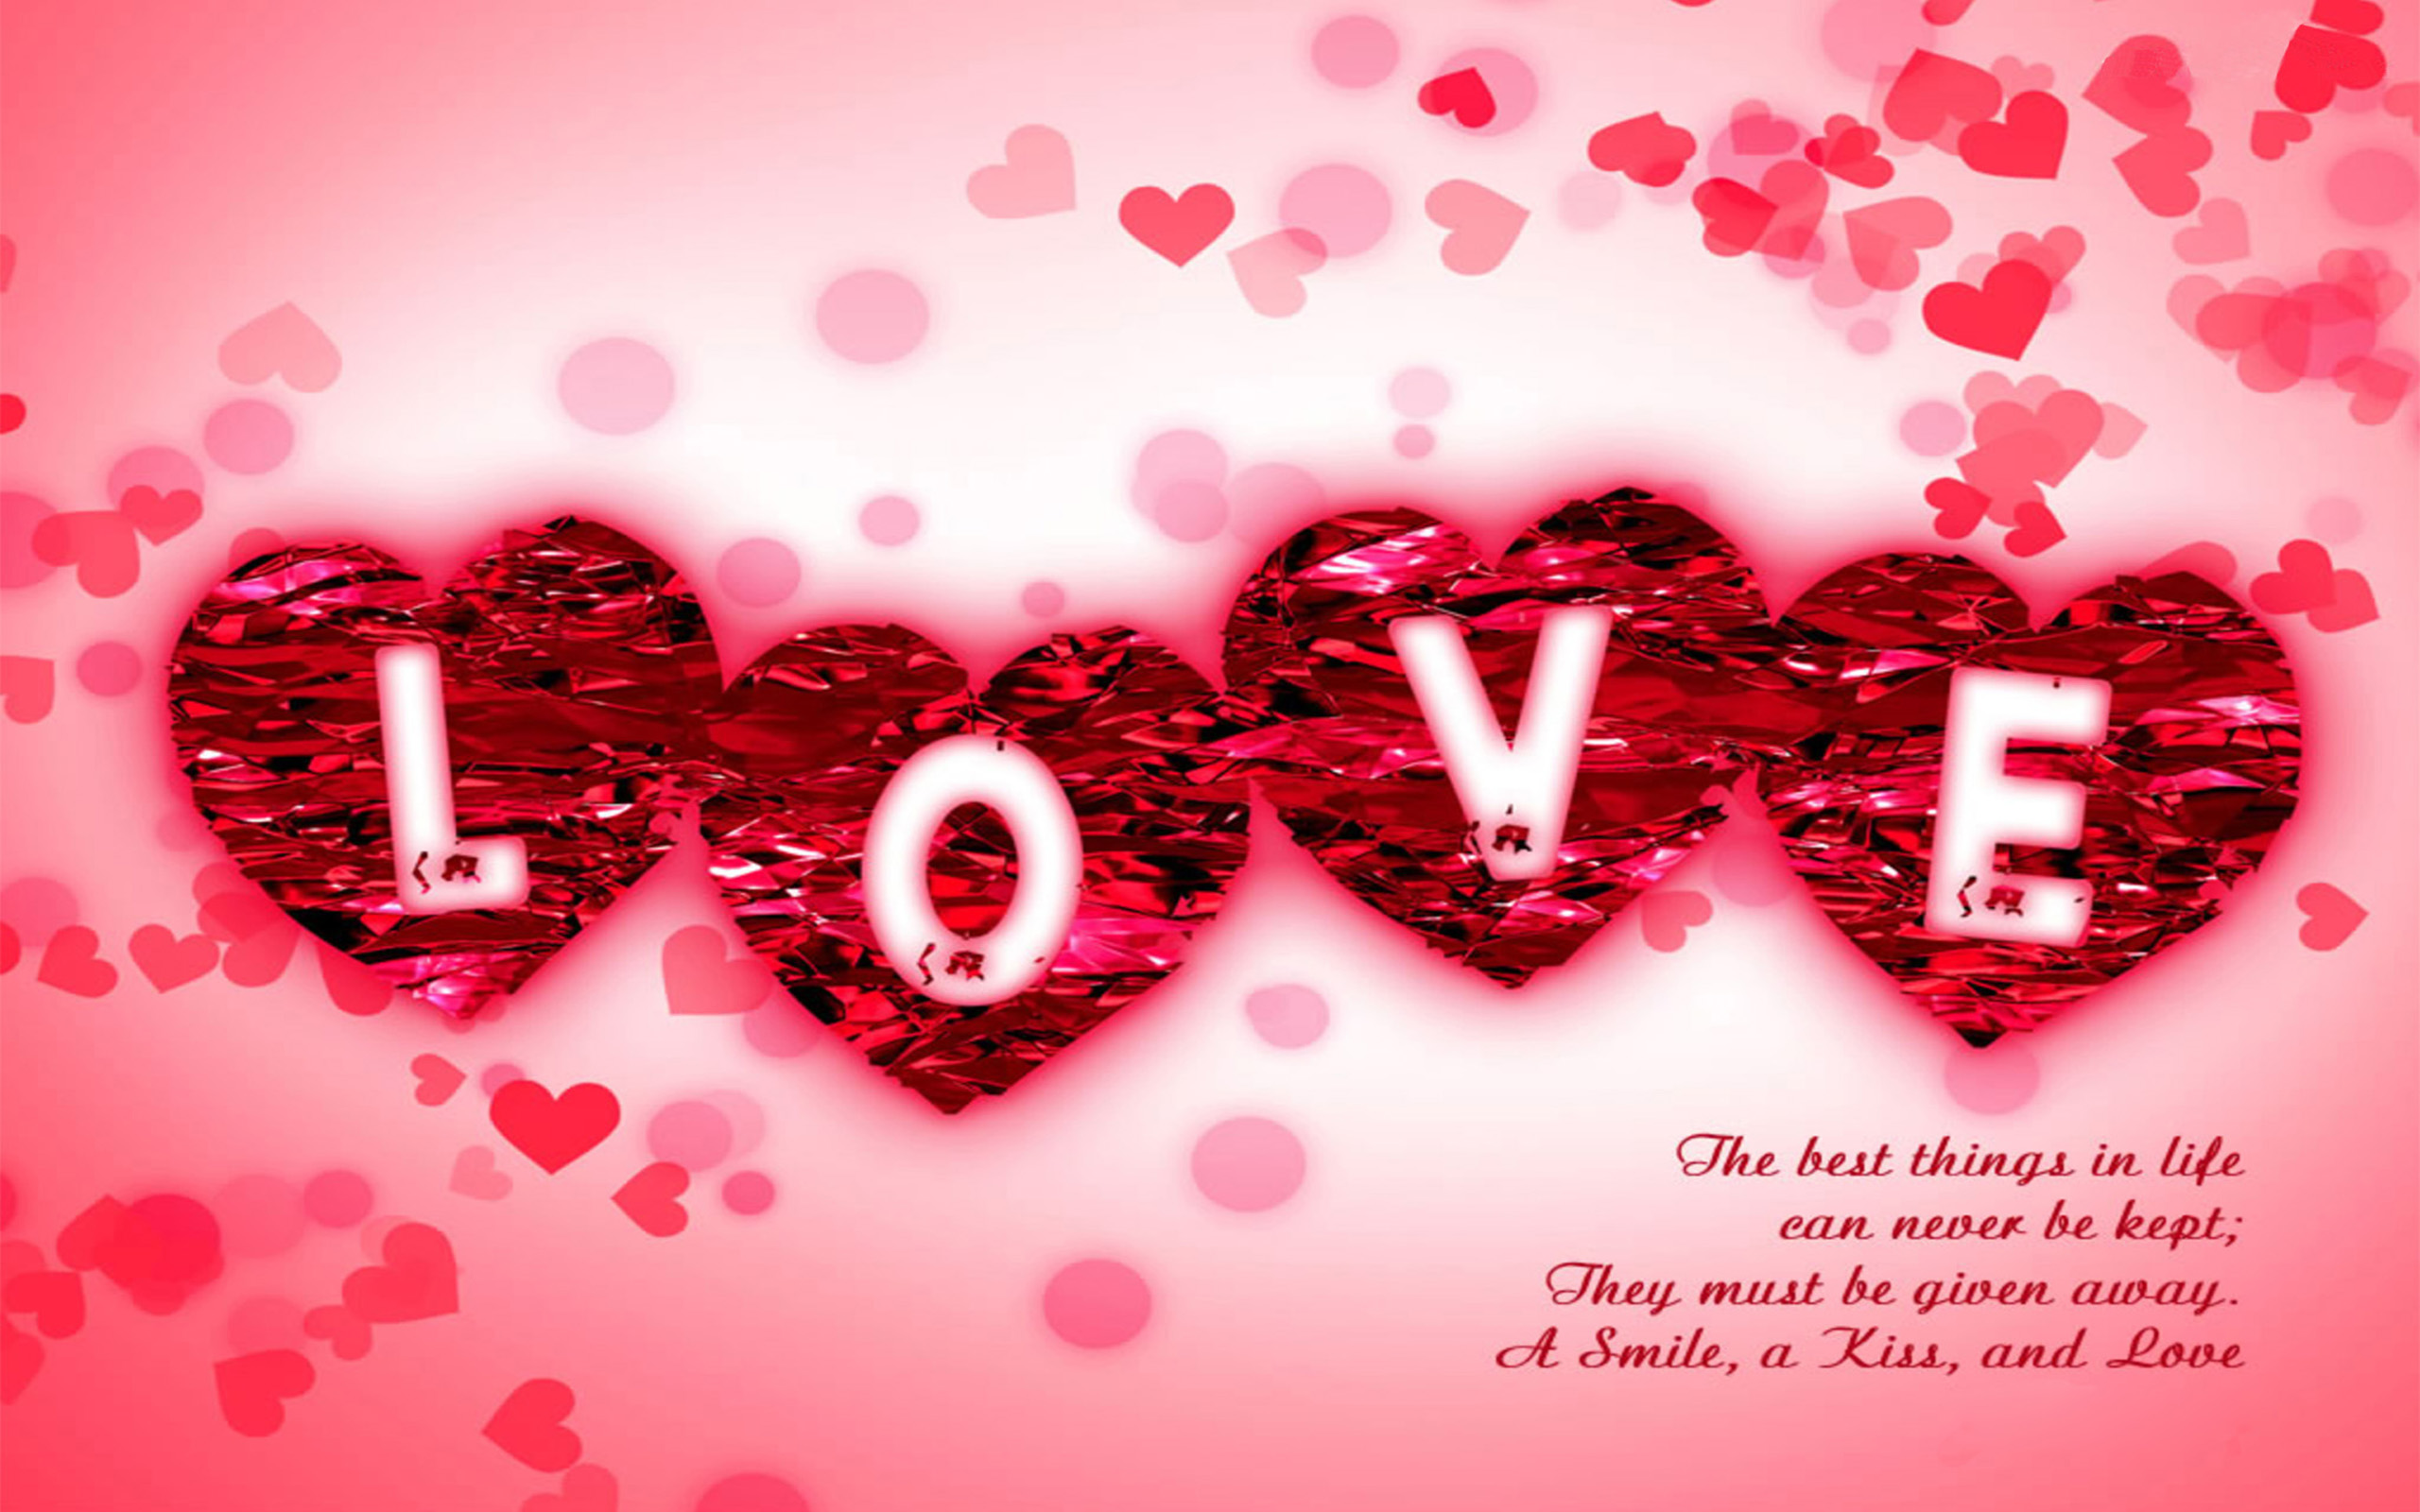 Love Message Pink Desktop Wallpaper 2560x1600